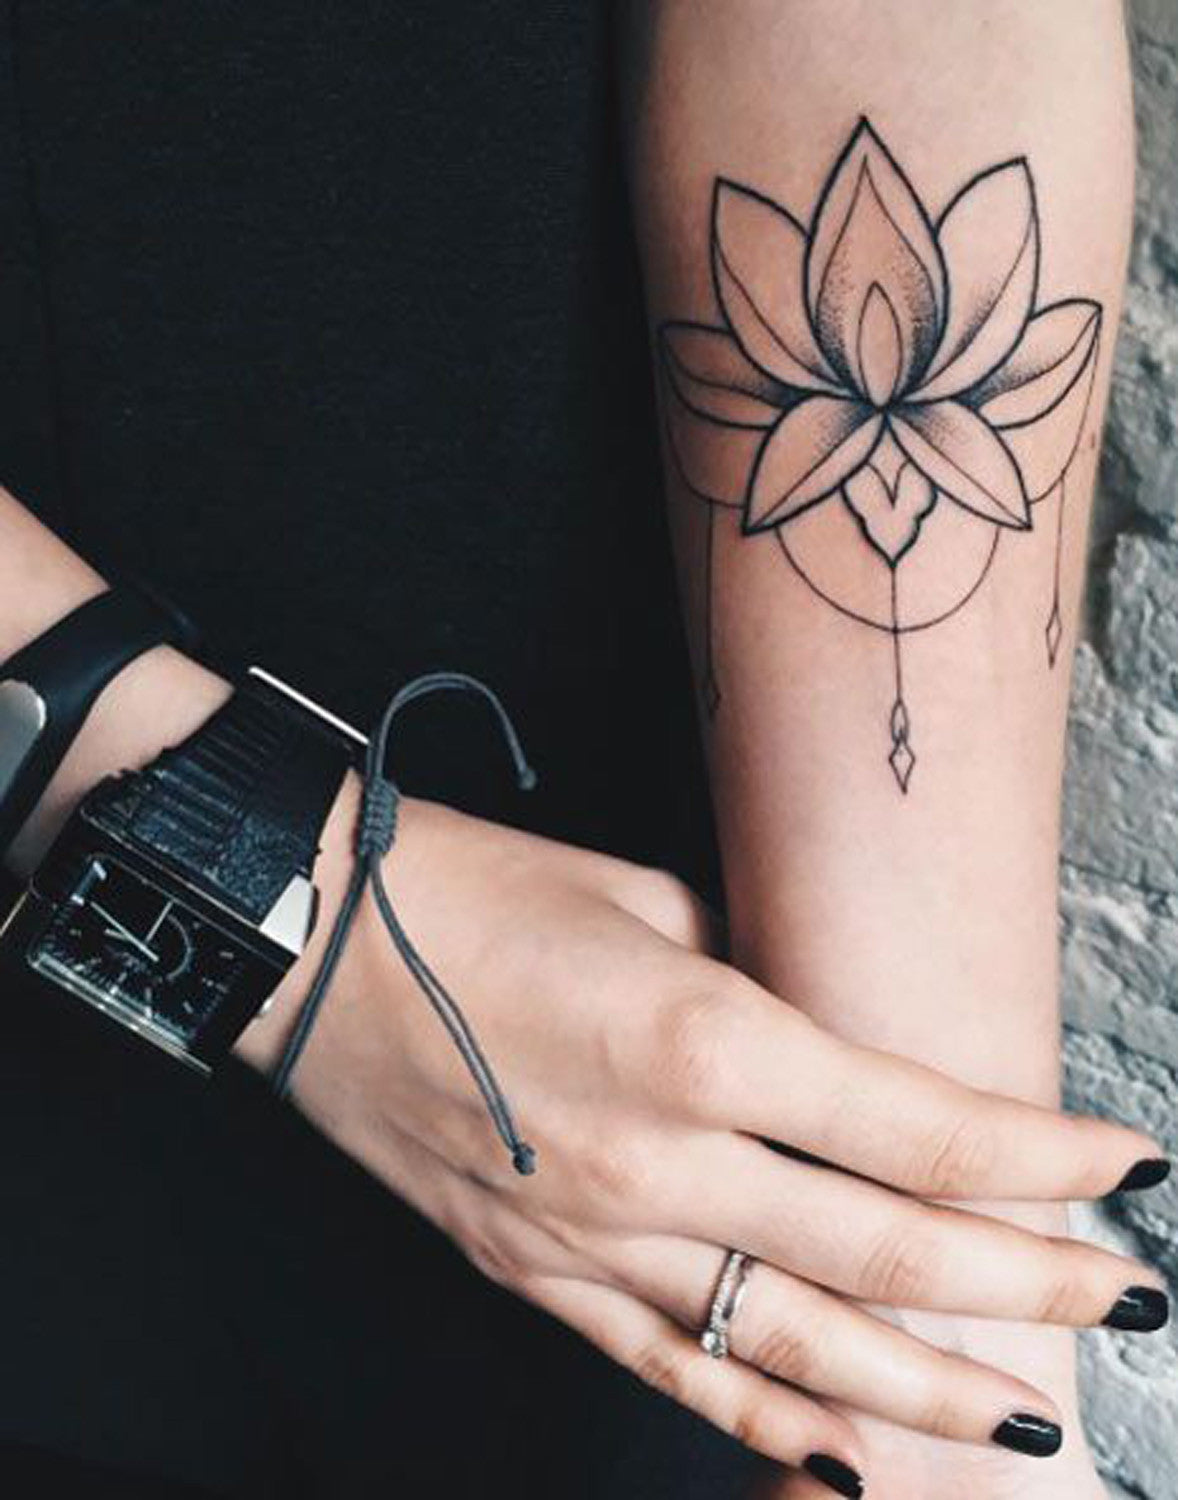 100 most popular lotus tattoos ideas for women mybodiart lotus flower wrist tattoo ideas for women black chandelier lace arm tat mybodiart izmirmasajfo Choice Image